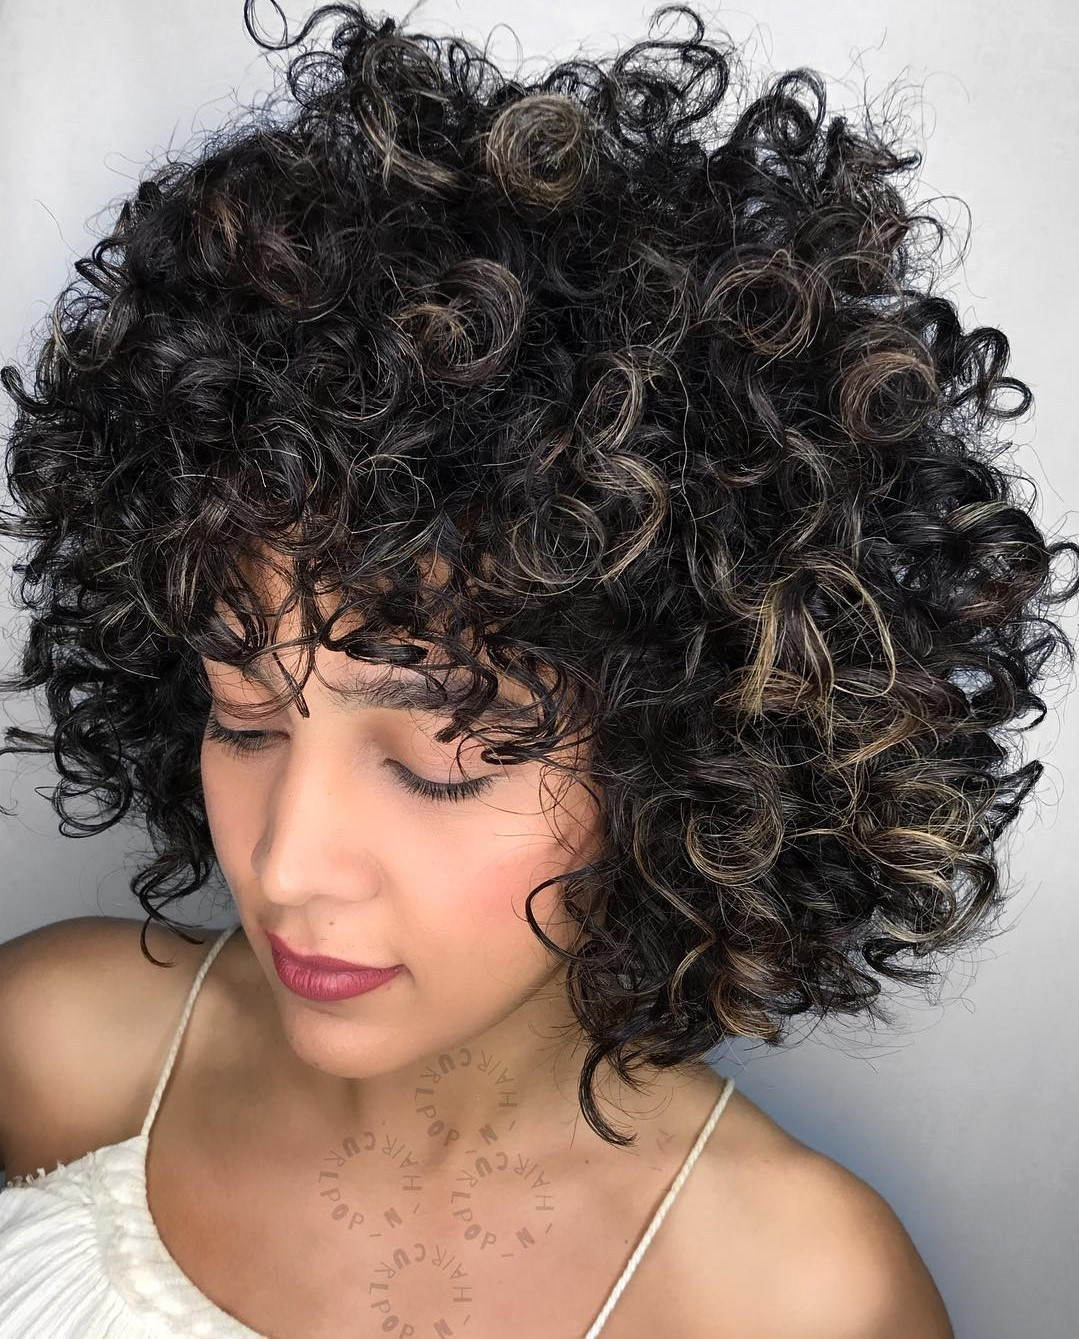 Big-Natural-Curly-Hairstyle